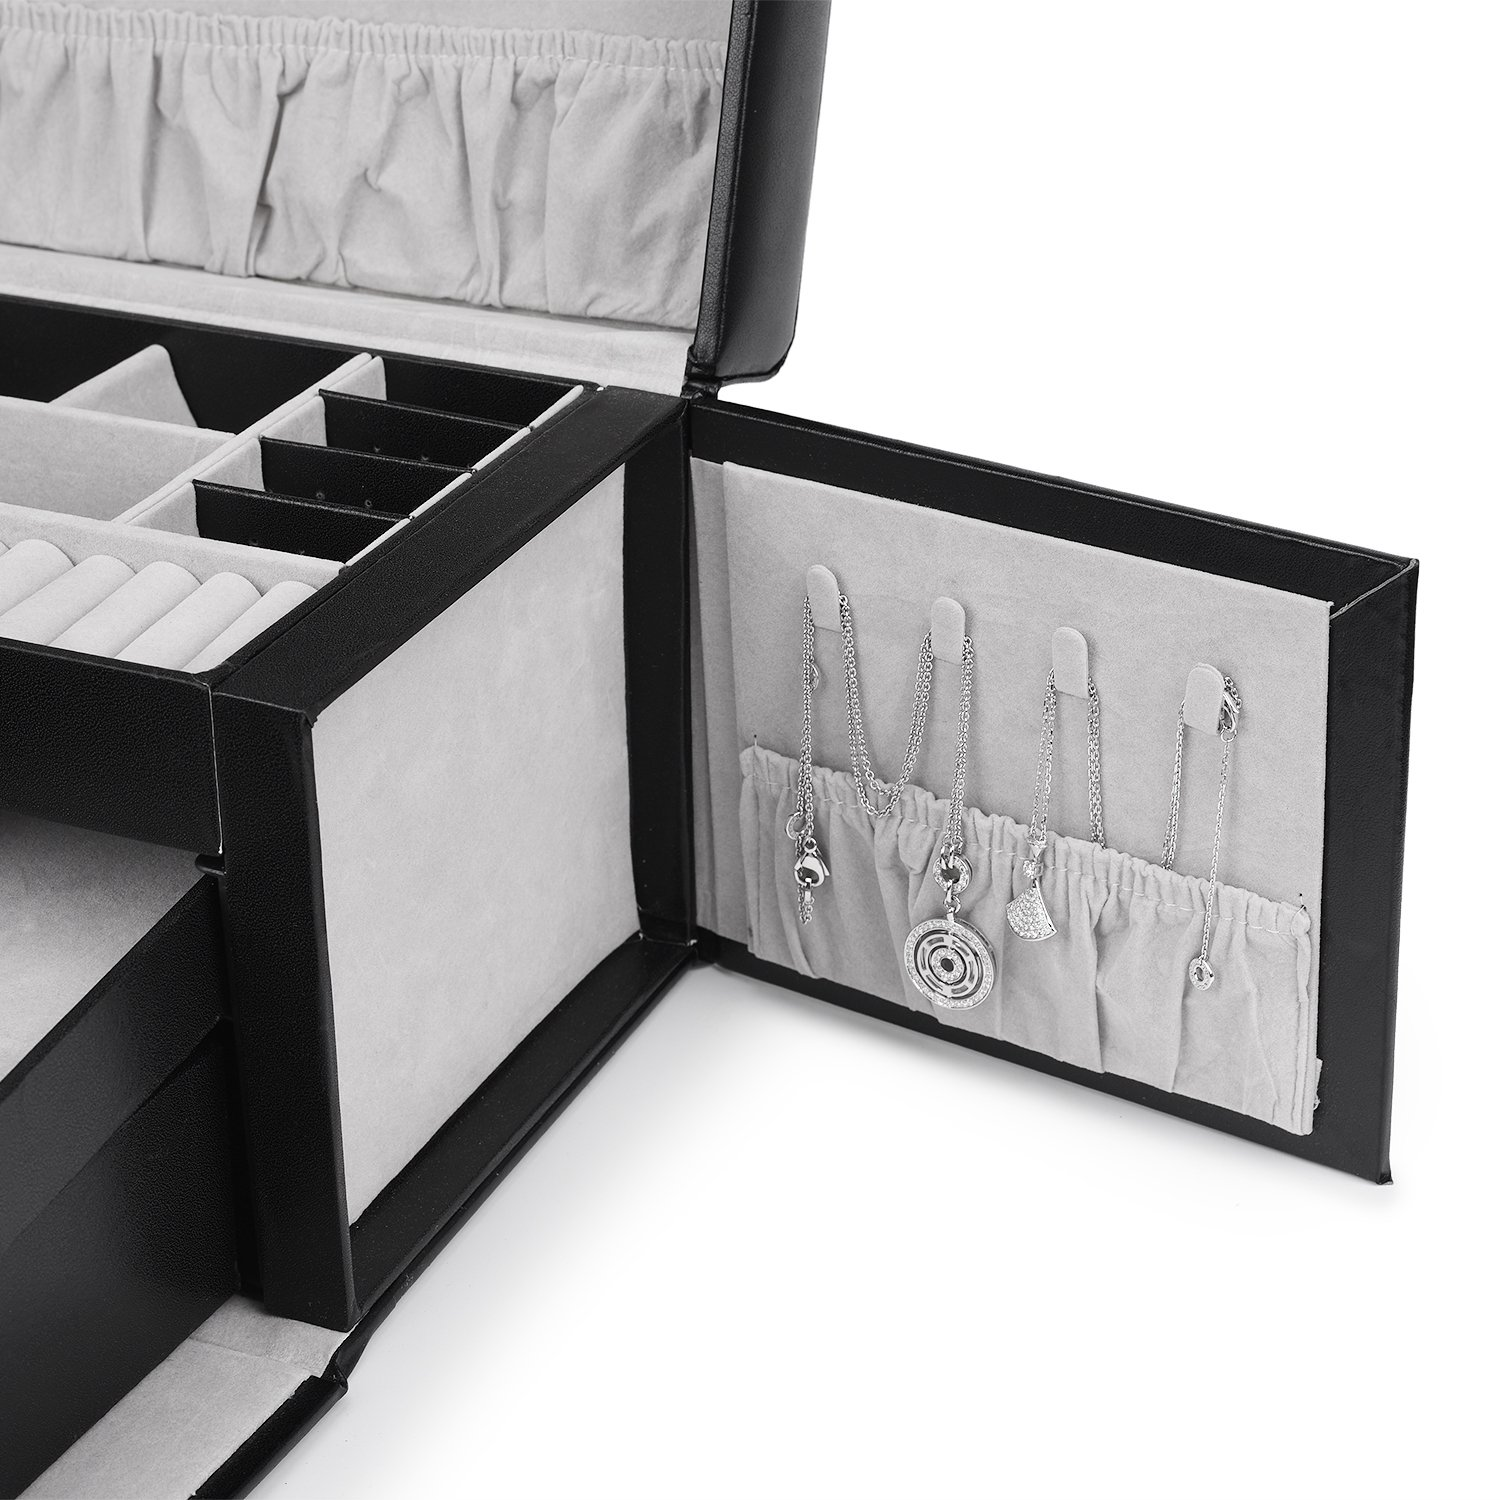 Juns Jewelry Box Organizer with Mini Travel Jewelry Case, Removable Trays, For Necklaces, Rings, Earrings, Bracelets, watches, Brooches by Juns (Image #2)